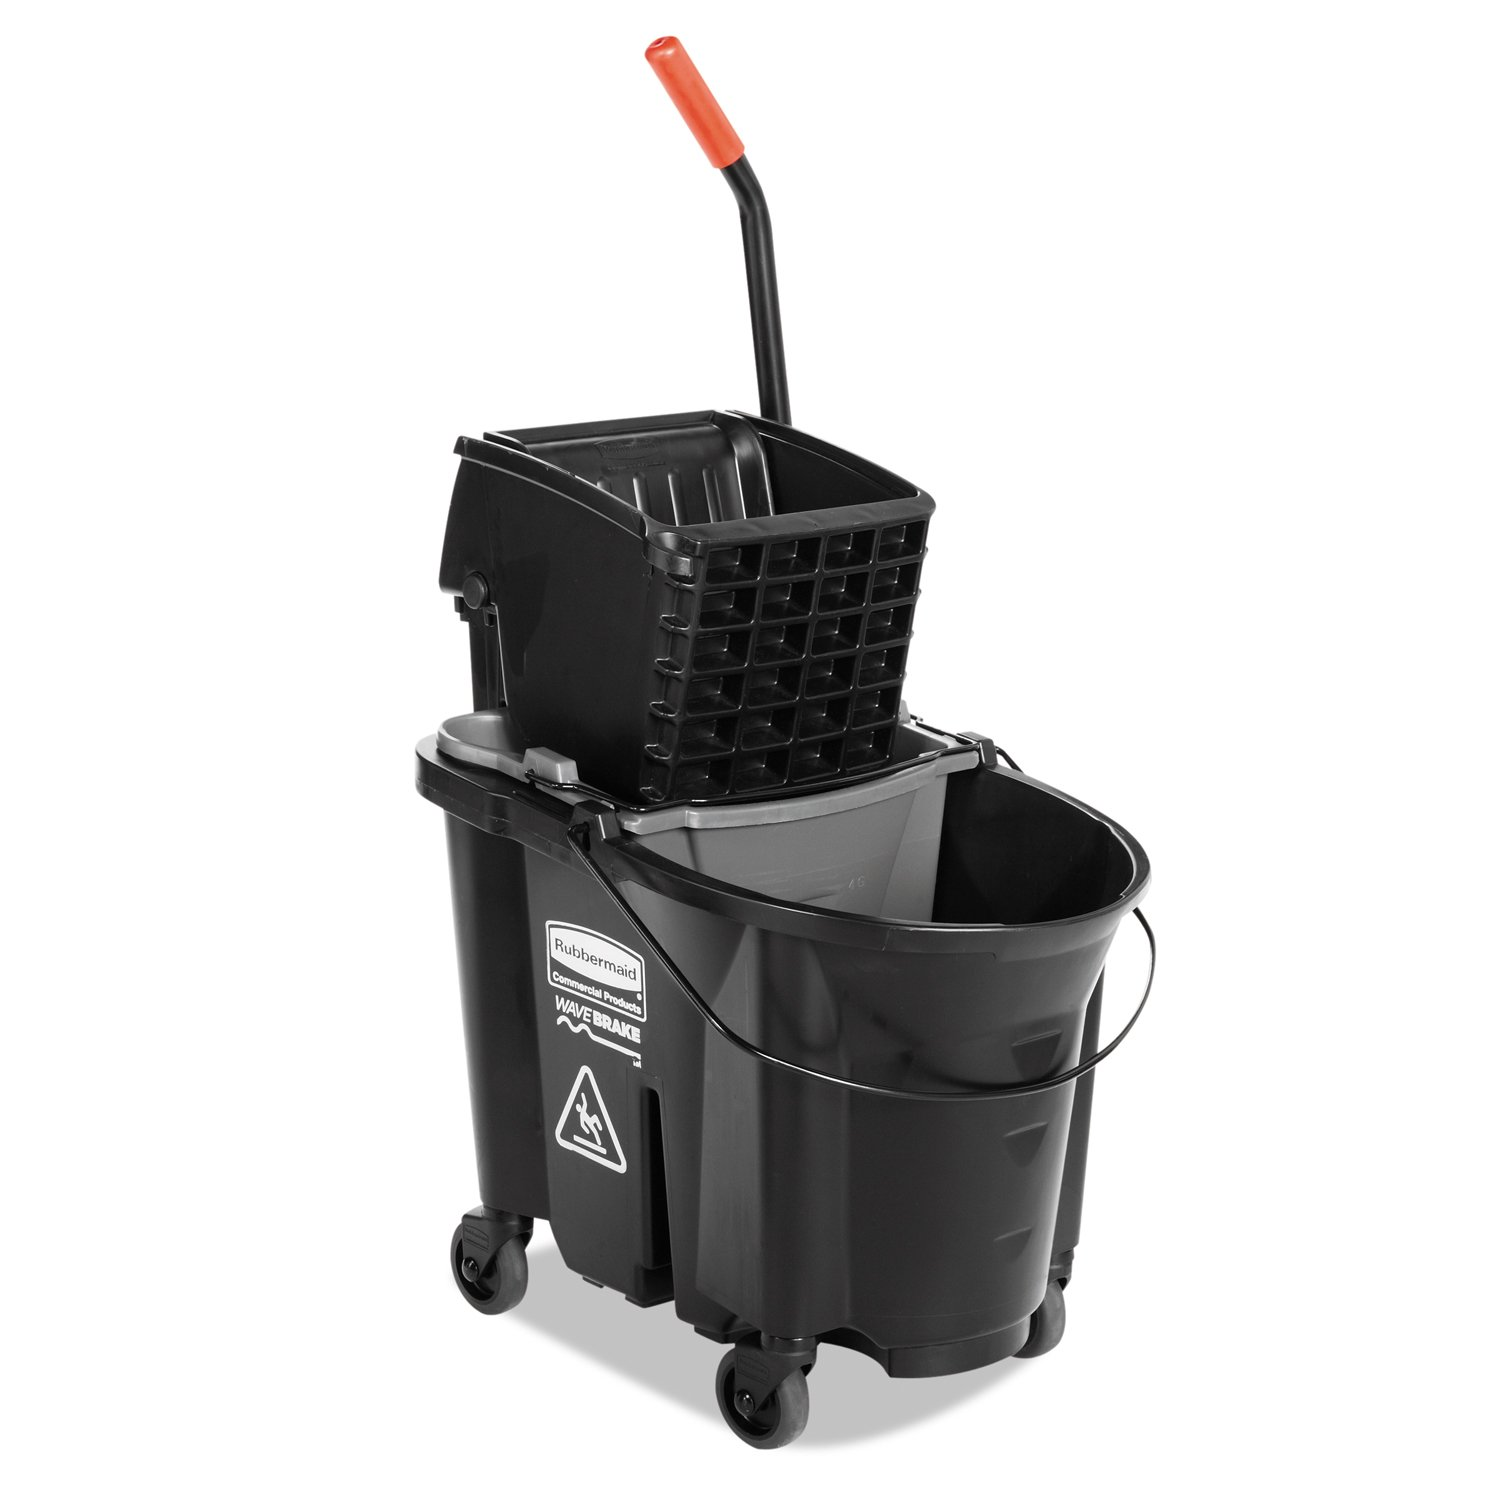 Rubbermaid Commercial Executive Series WaveBreak Combination Mopping System, Side-Press, 35-quart, Black (1863896) by Rubbermaid Commercial Products